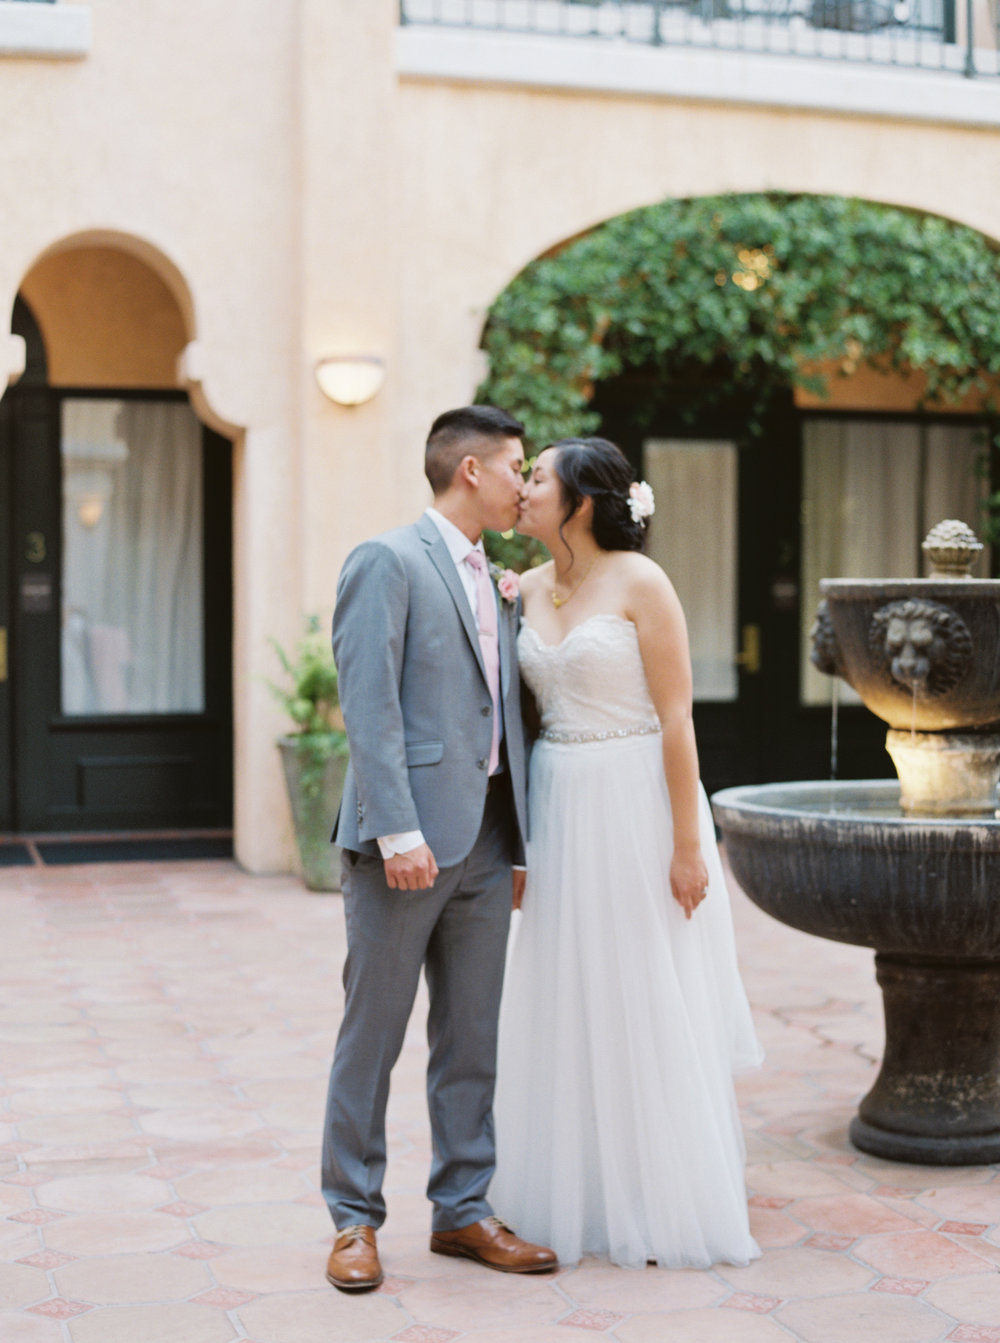 trynhphoto_wedding_photography_Standford_PaloAlto_SF_BayArea_Destination_OC_HA-381.jpg